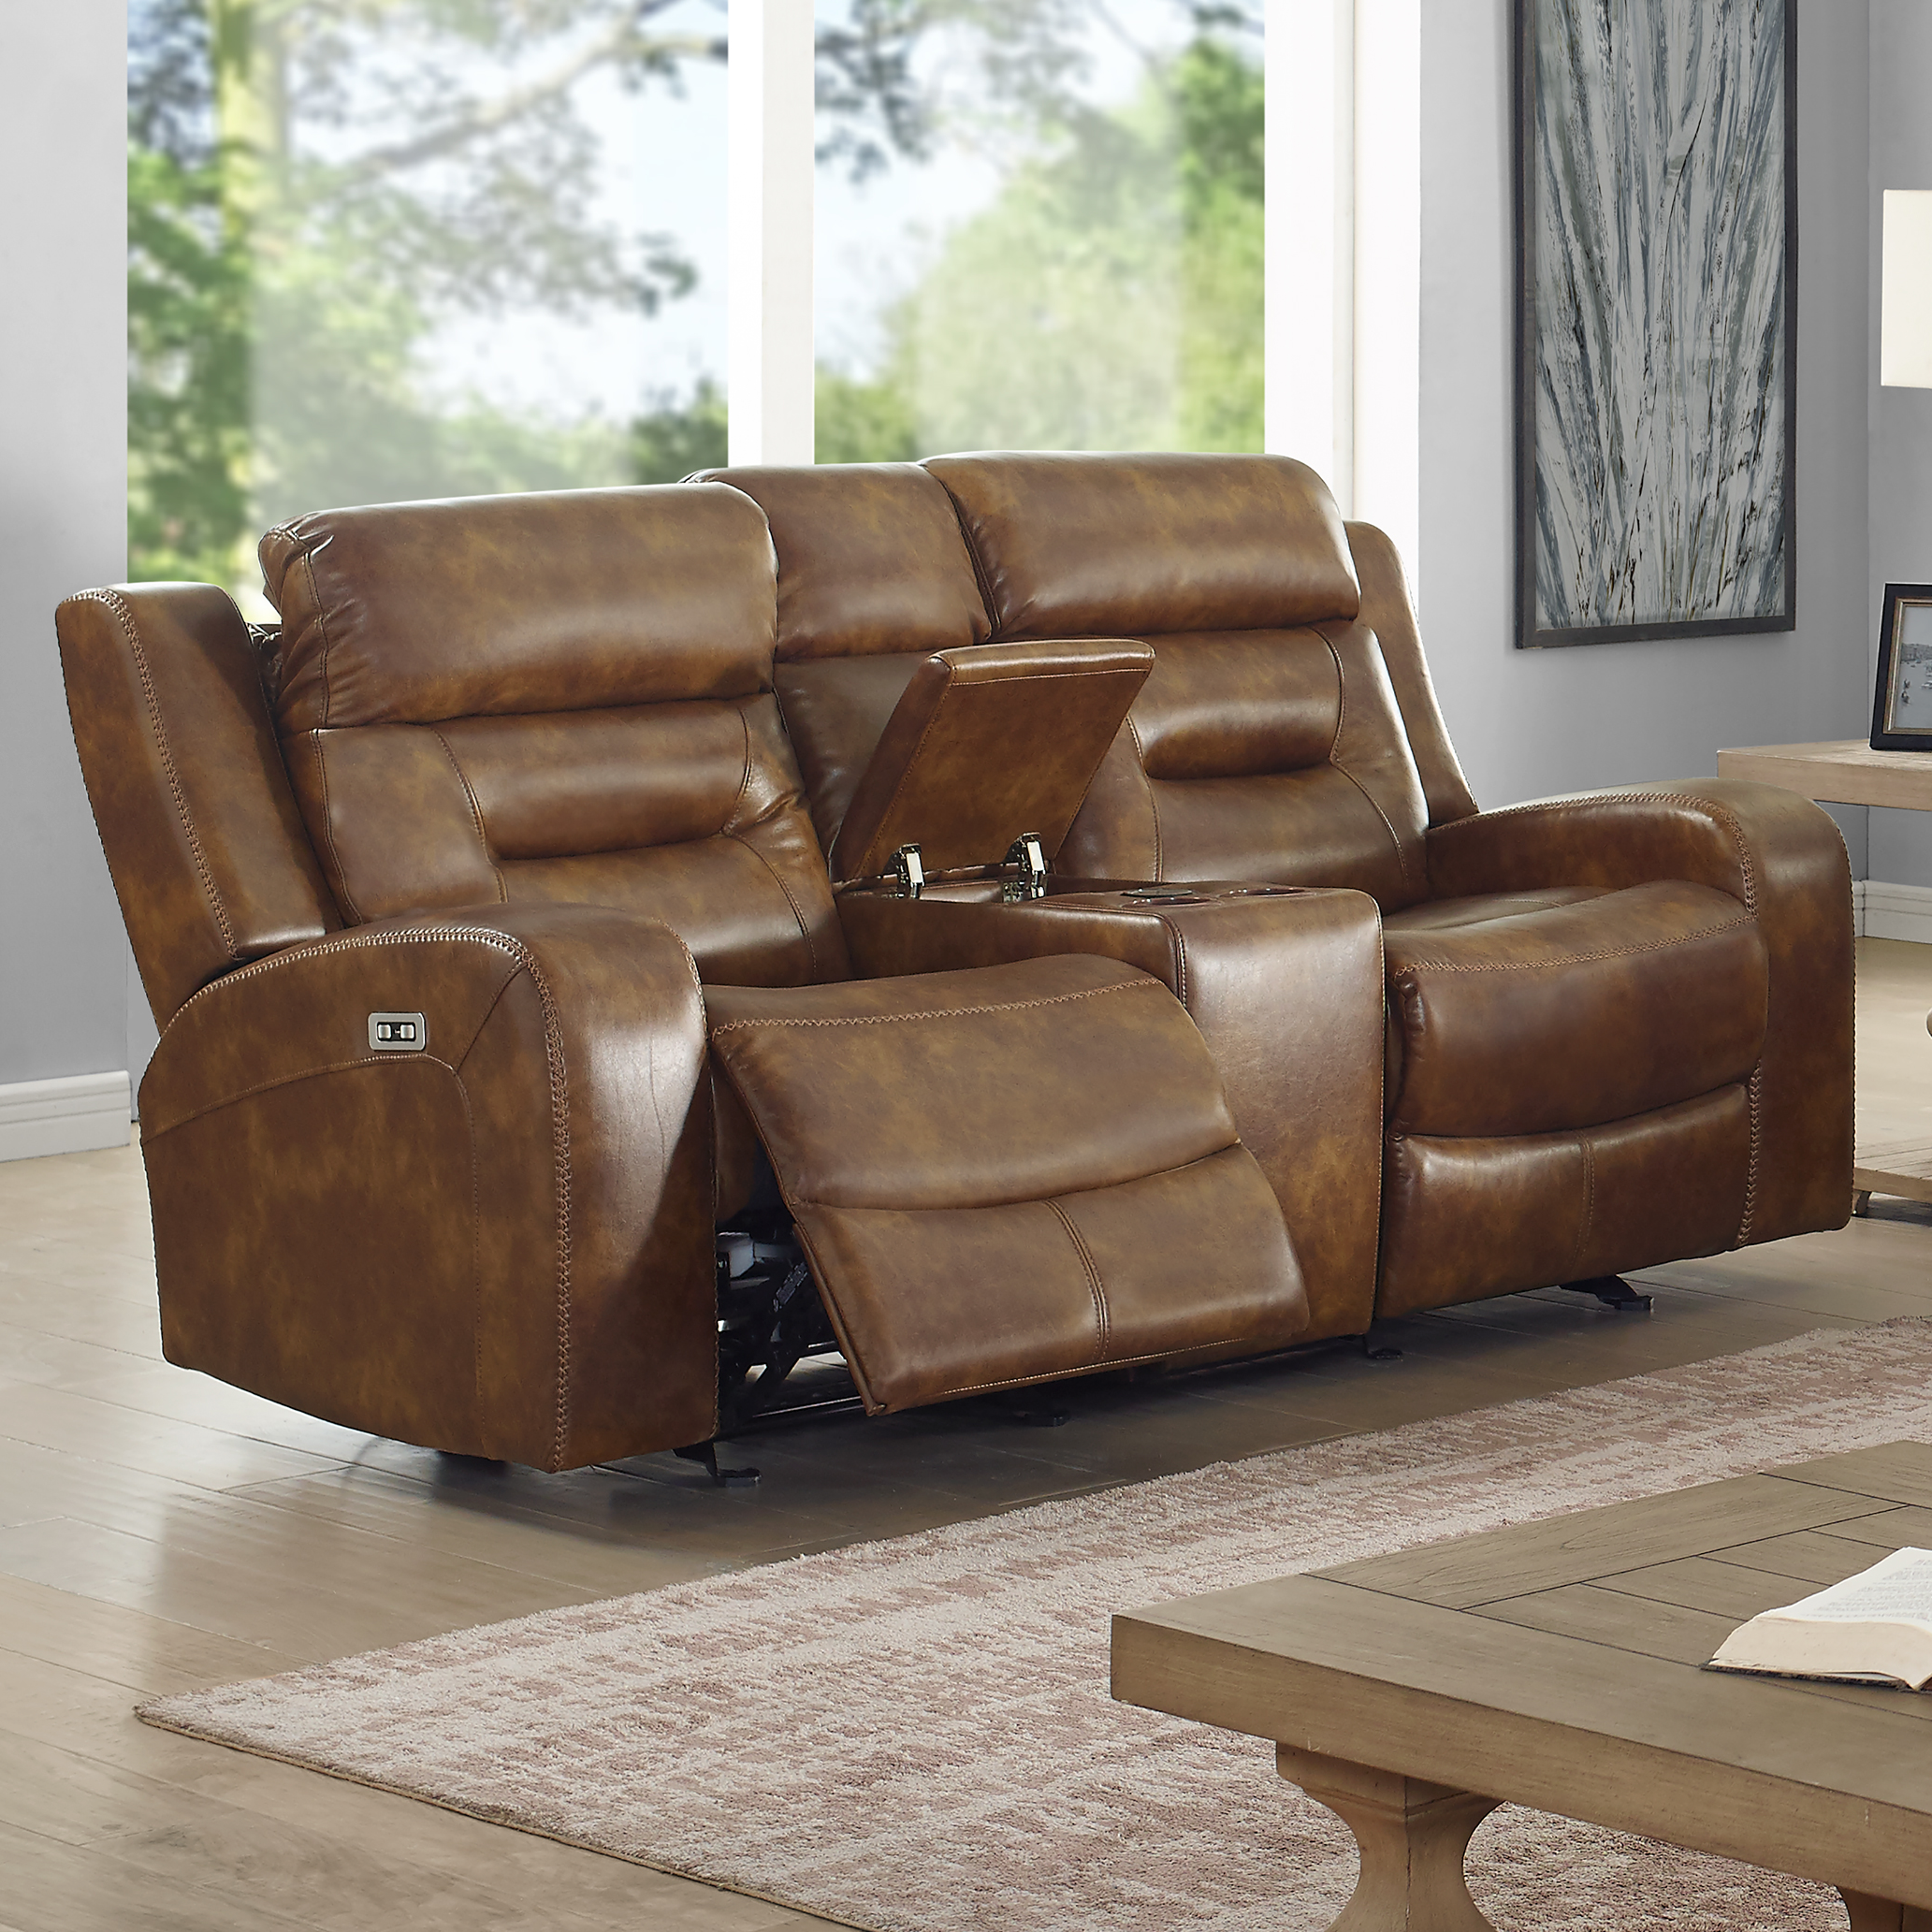 Dallas Power Reclining Glider Console Loveseat by New Classic at Wilson's Furniture